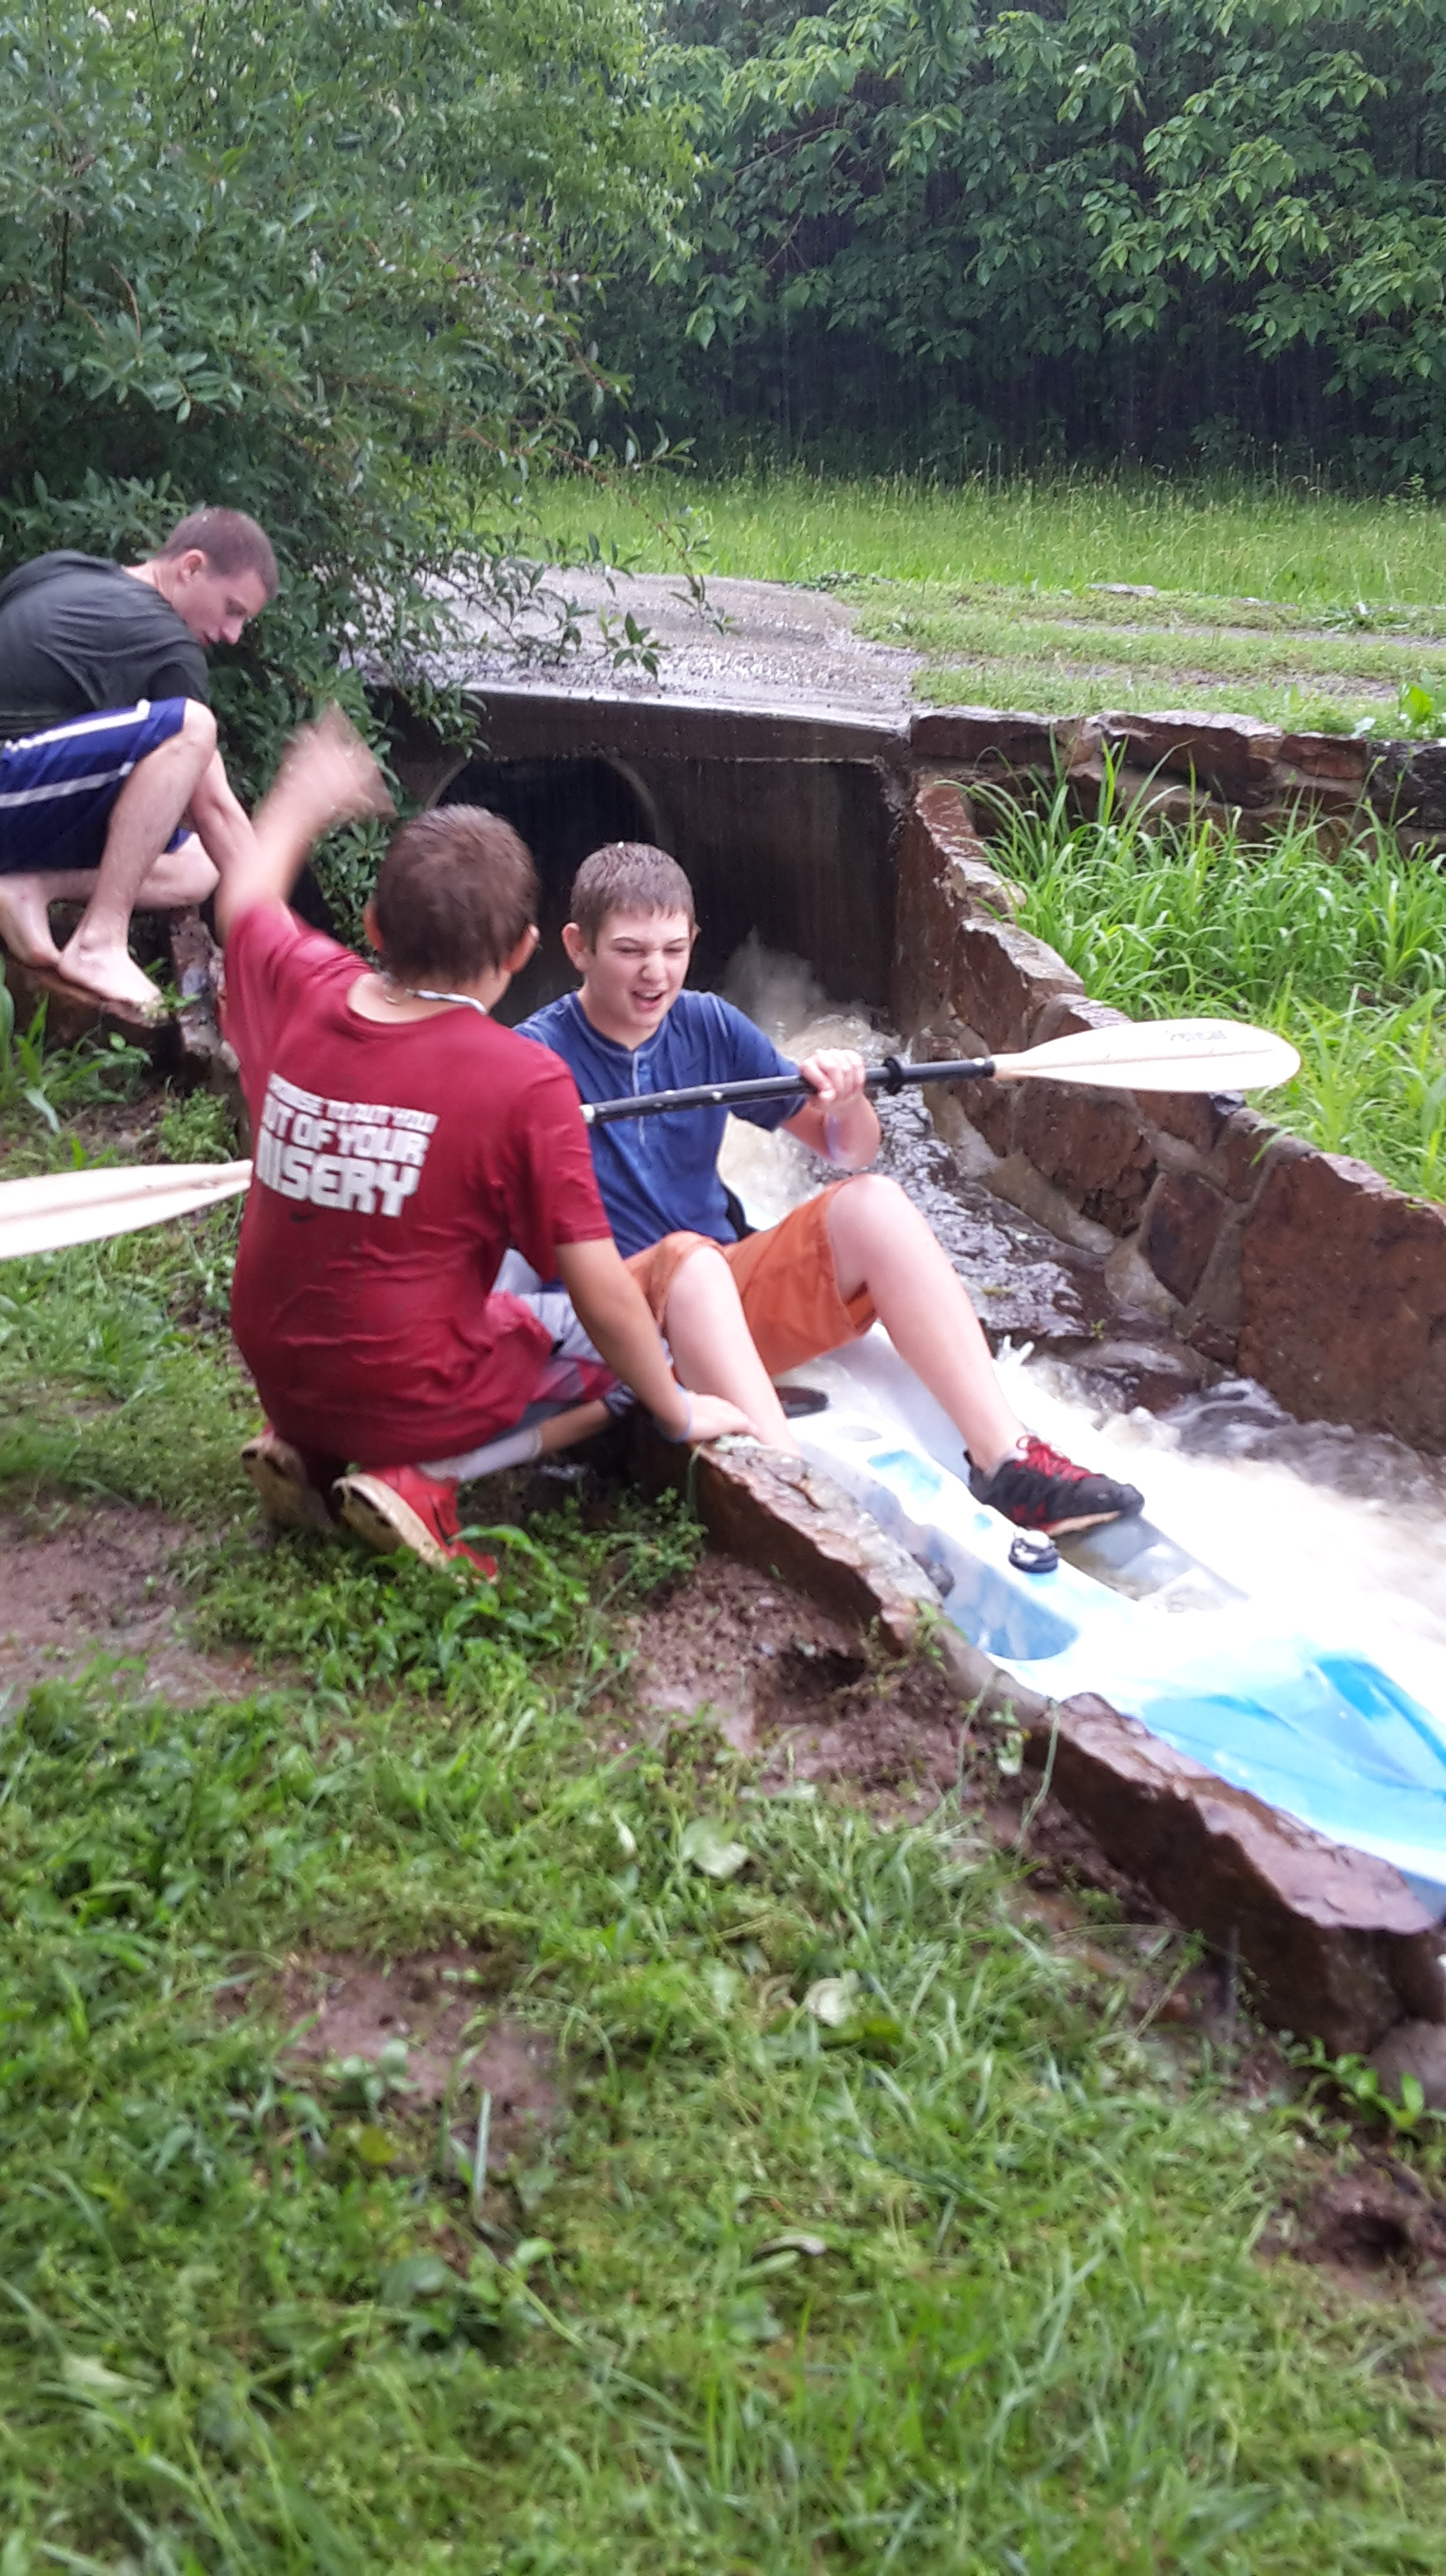 Kiddos making the best of the rainy days. Via 5NEWS viewer Matthew Byron